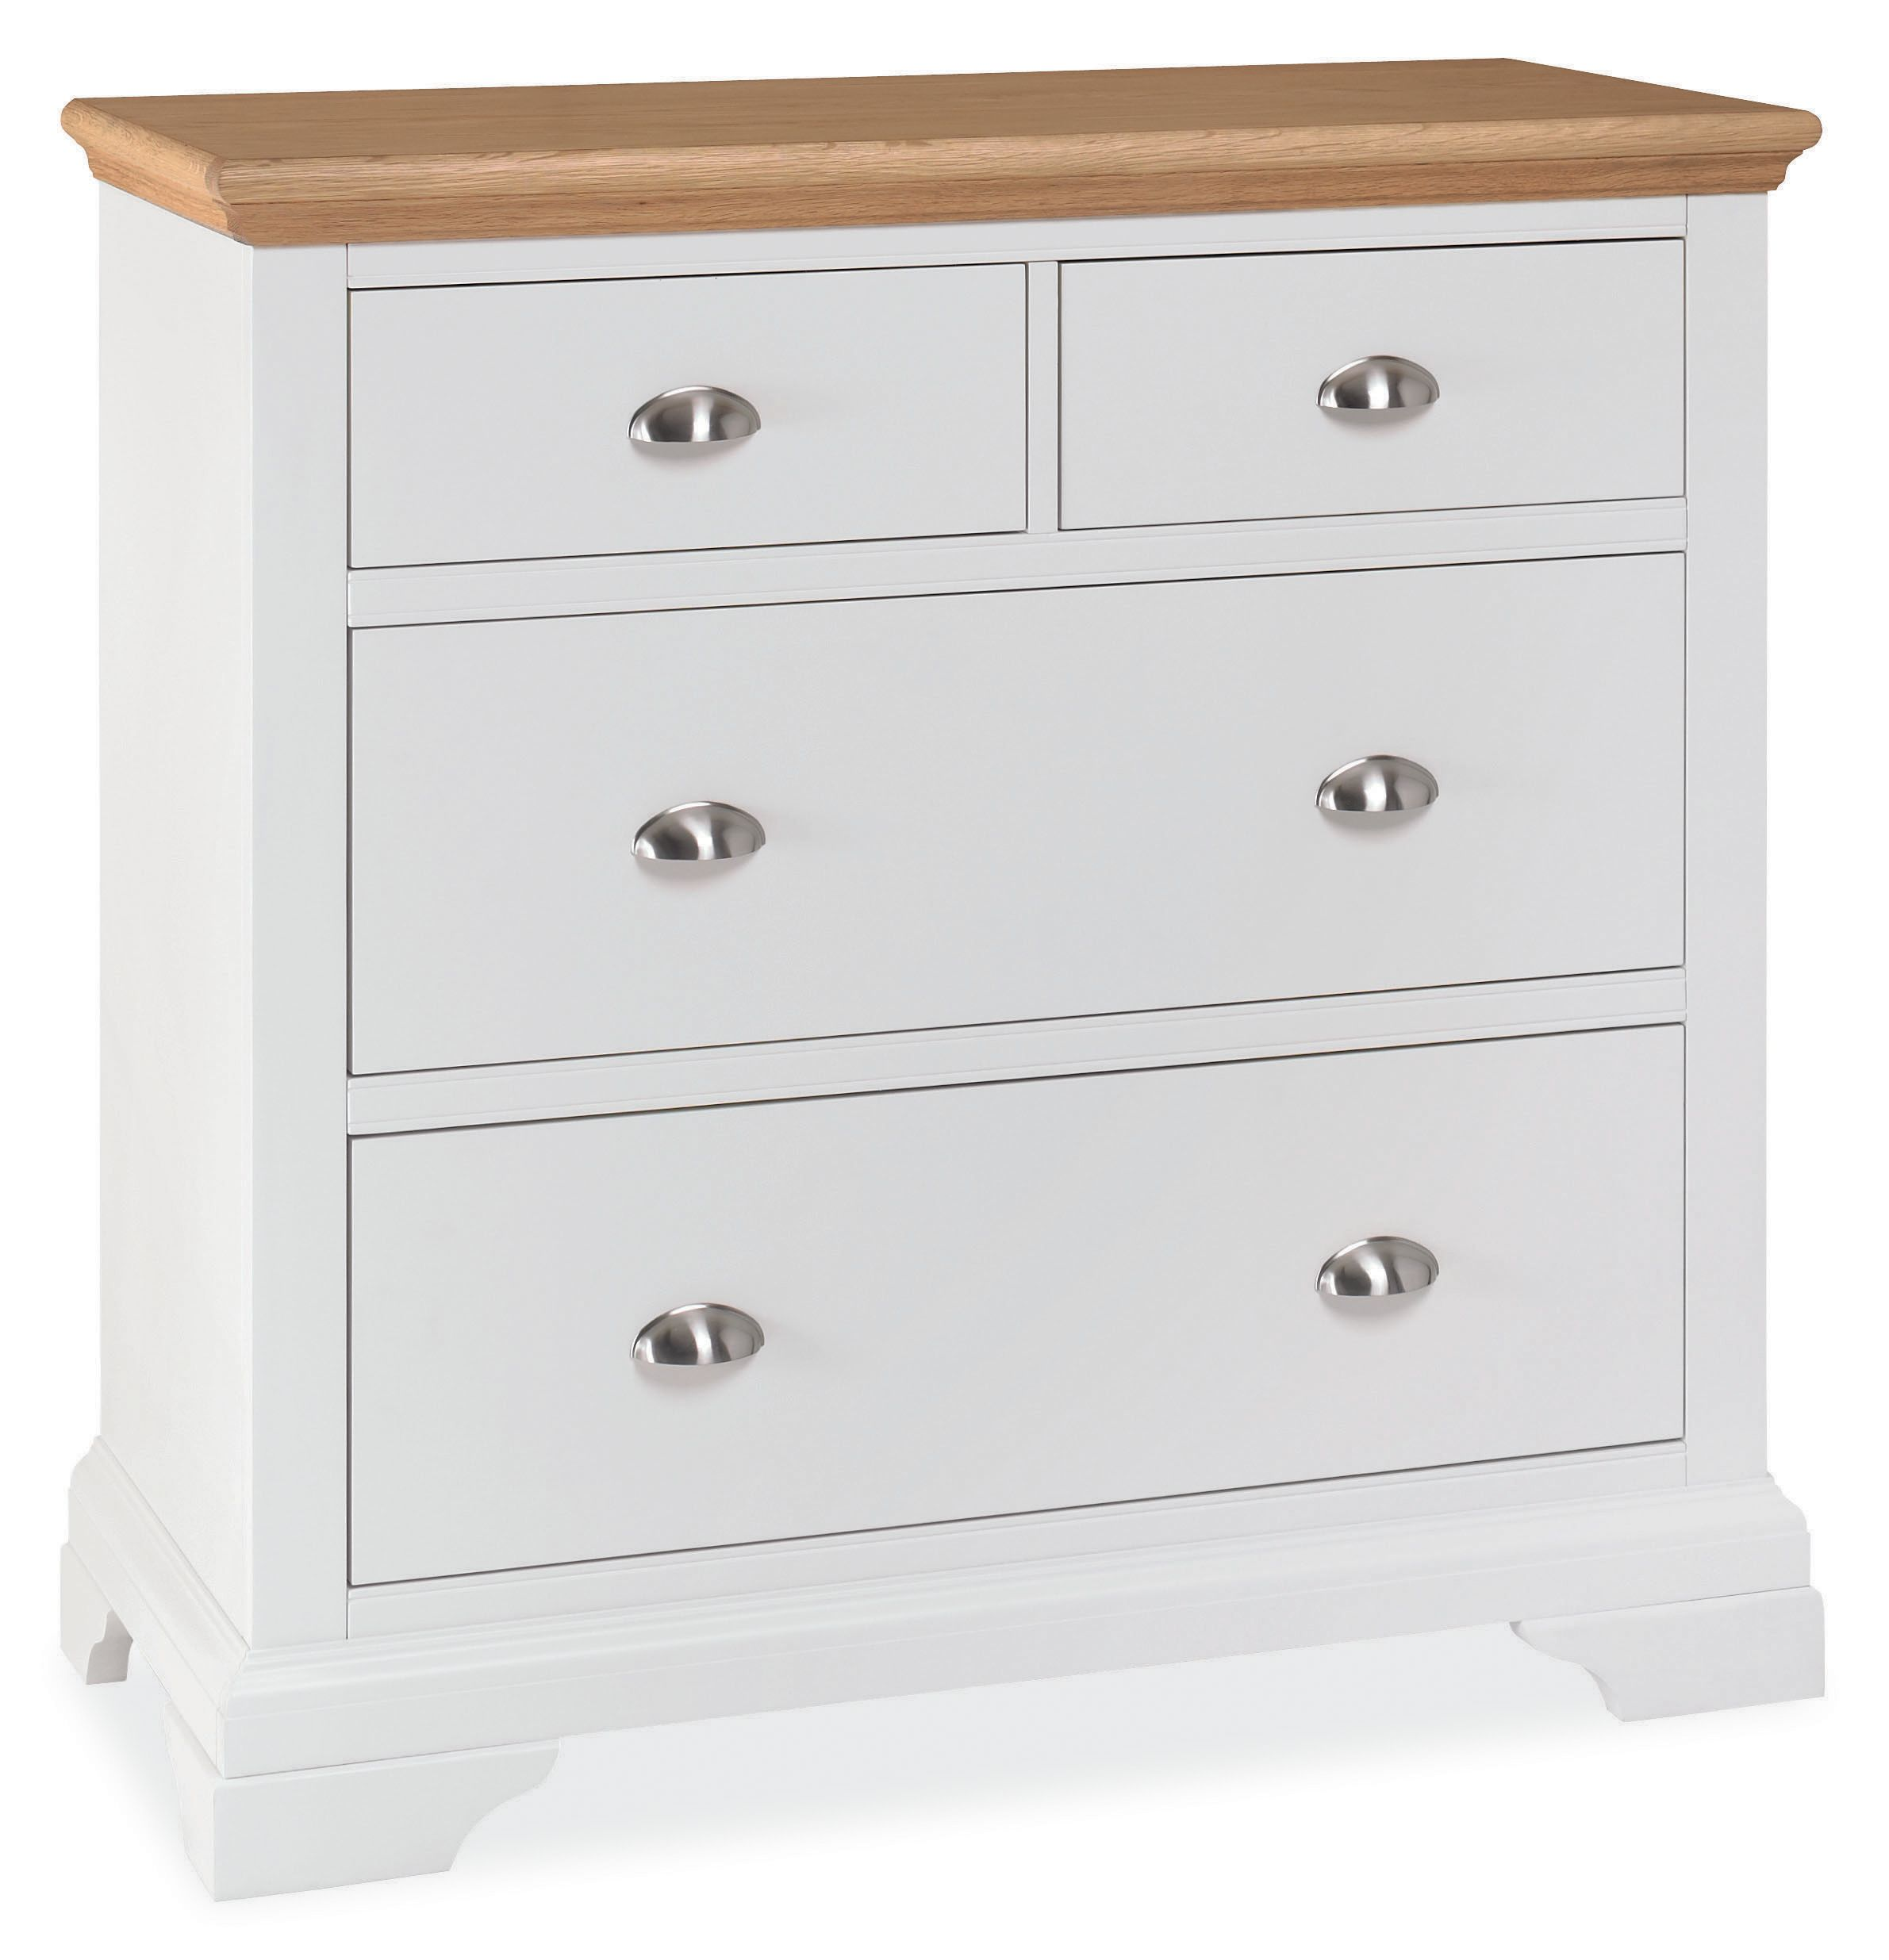 Etienne 2 + 2 drawer chest